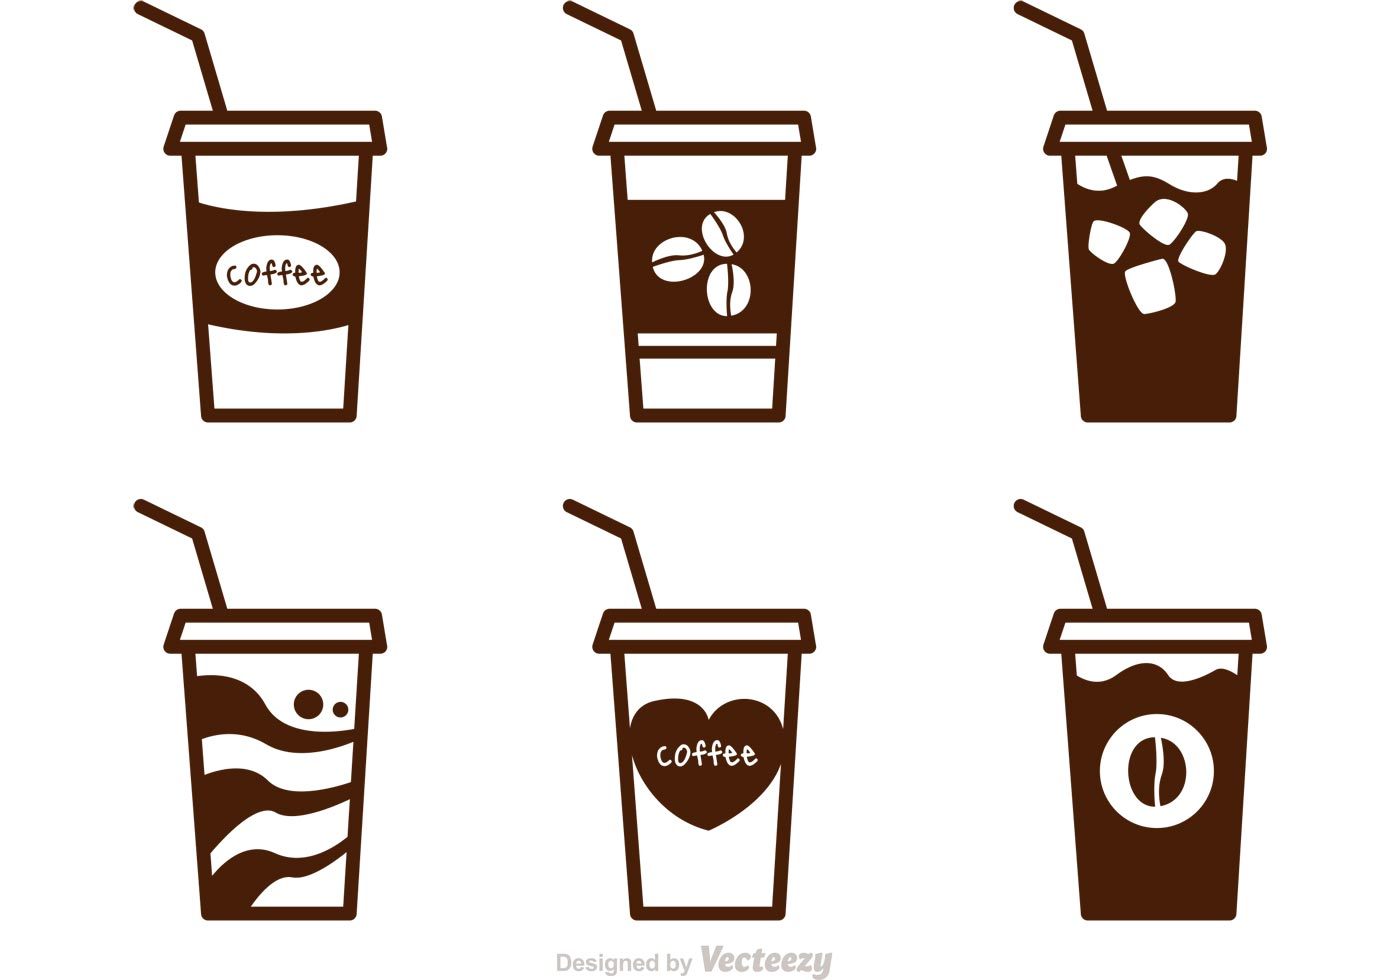 iced coffee vectors download free vector art  stock starbucks logo vector 2015 starbucks logo vector 2017